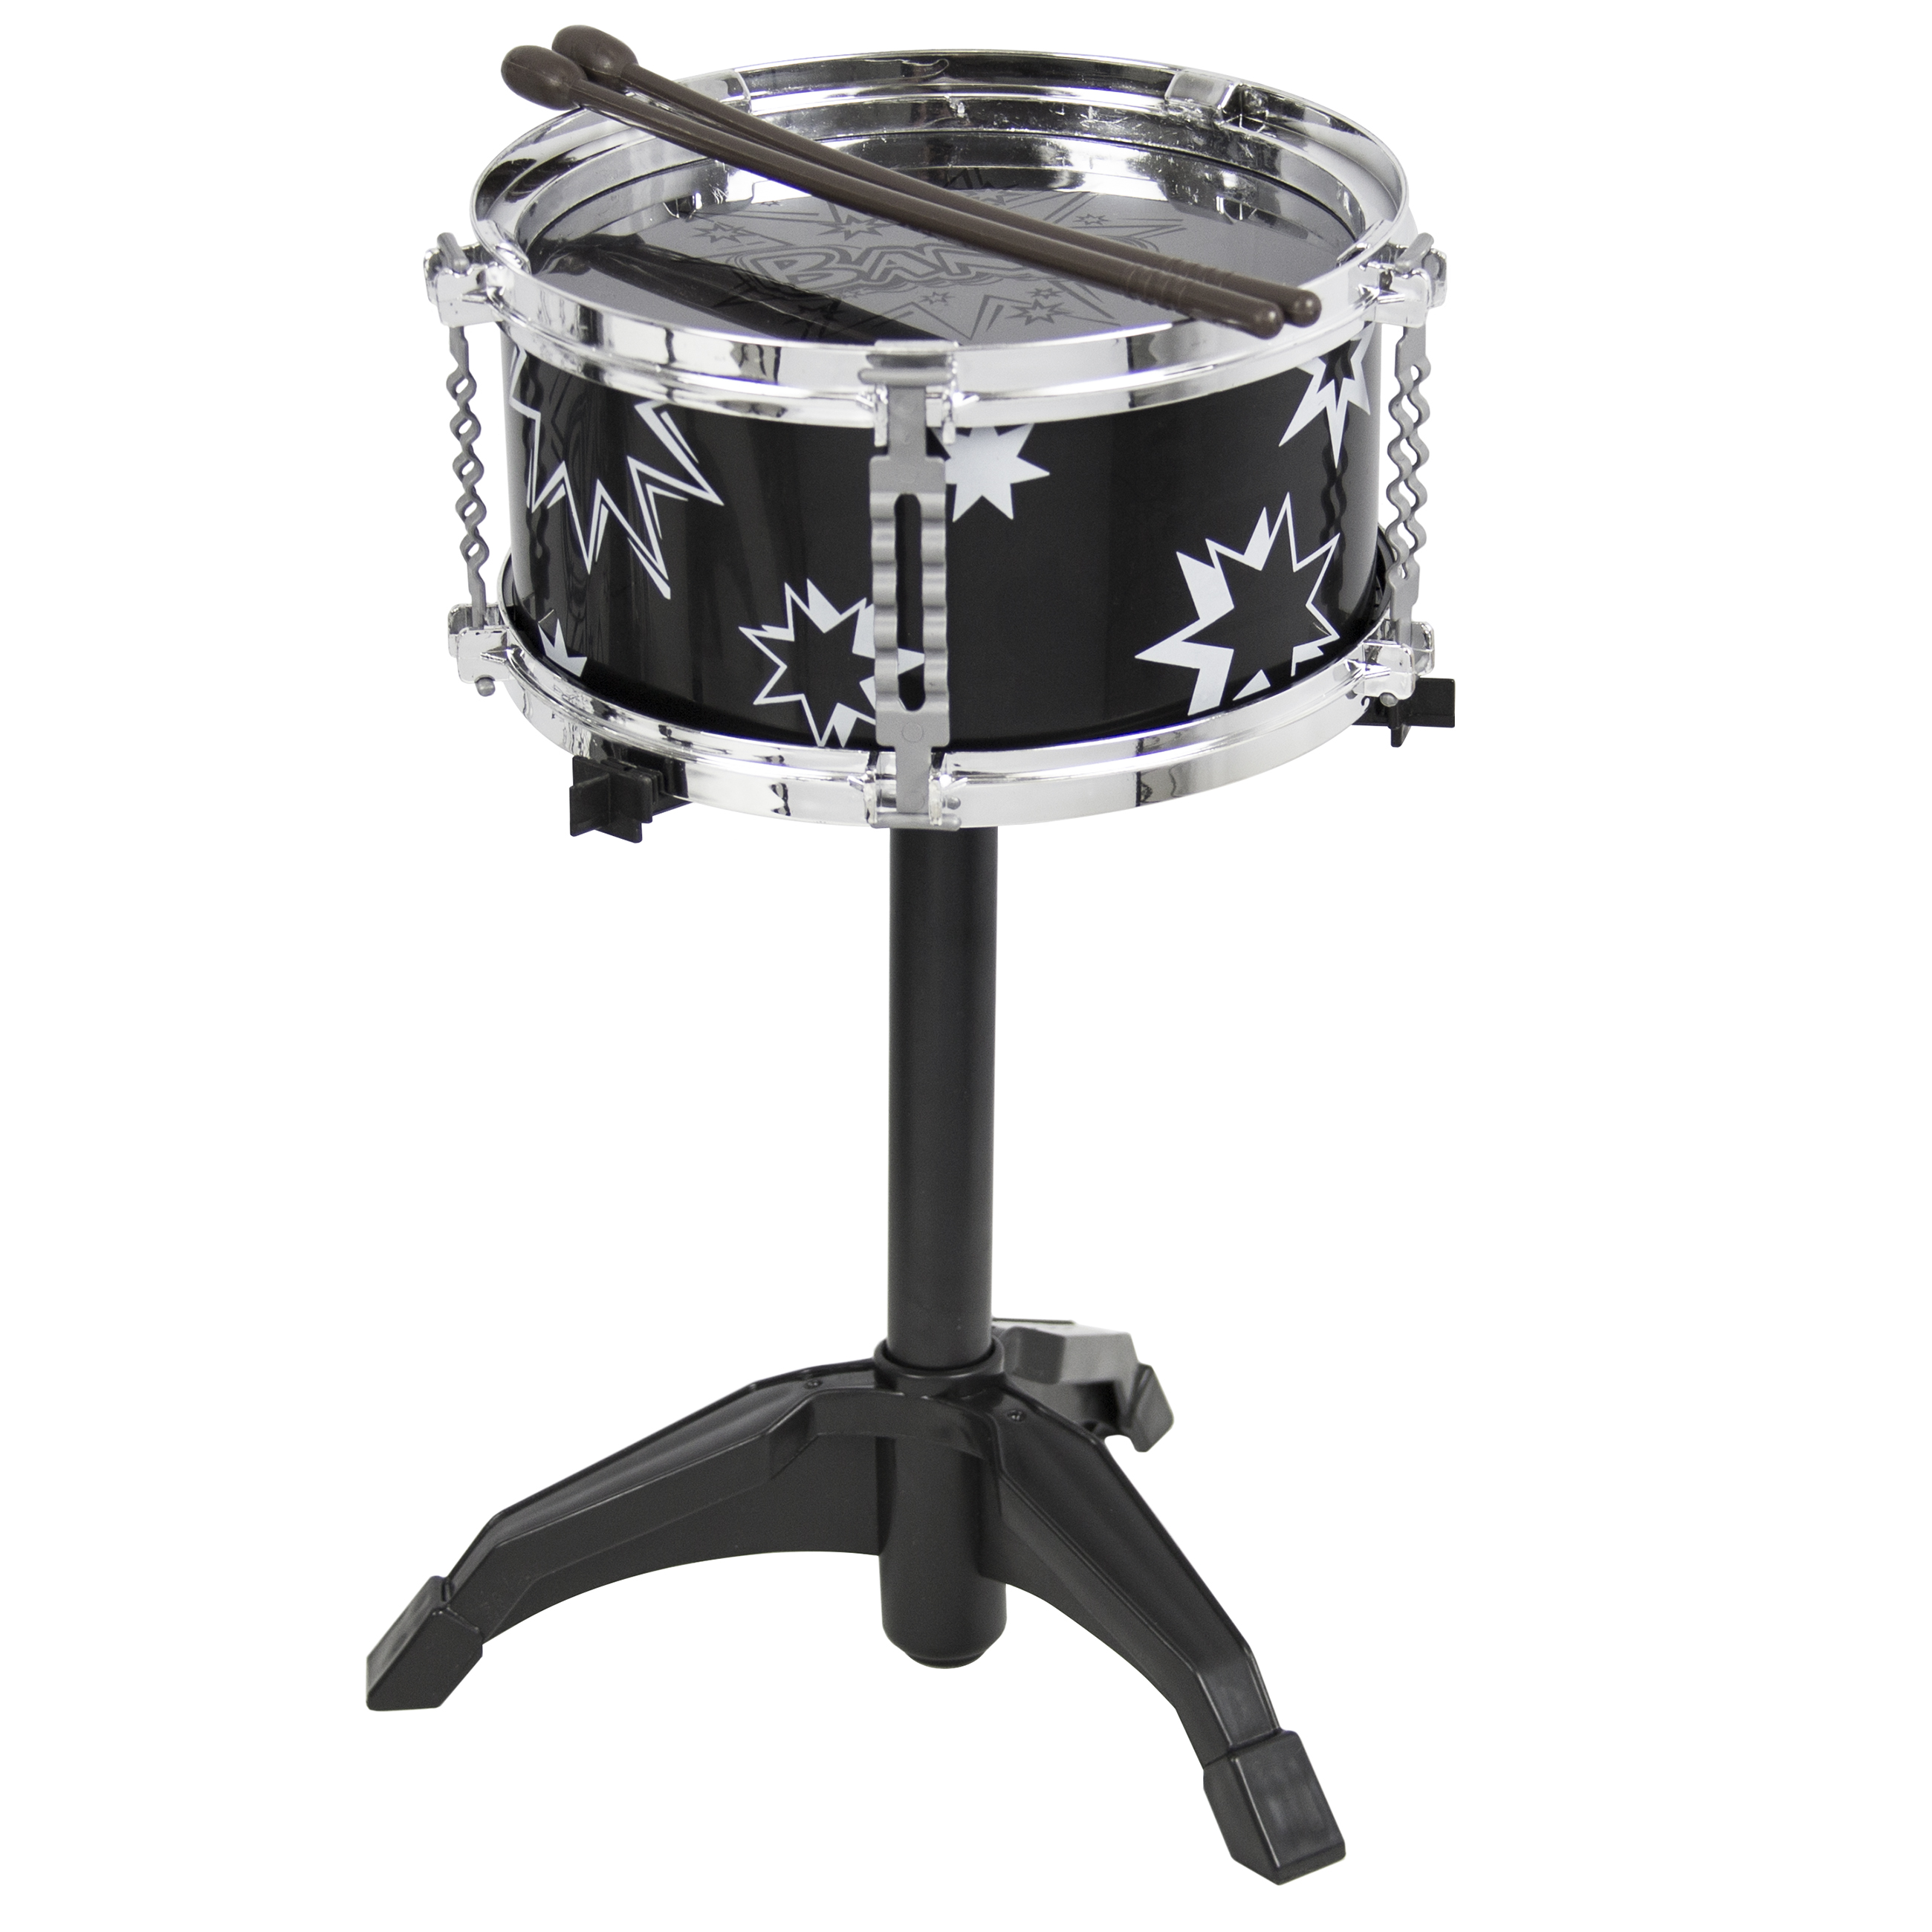 BCP Kids Toy Musical Instrument 11 Piece Kids Drum Set W/ Bass Drum Tom Drums Cymbal Stool Drumsticks Drum Kit - Walmart.com  sc 1 st  Walmart : stool for drum set - islam-shia.org